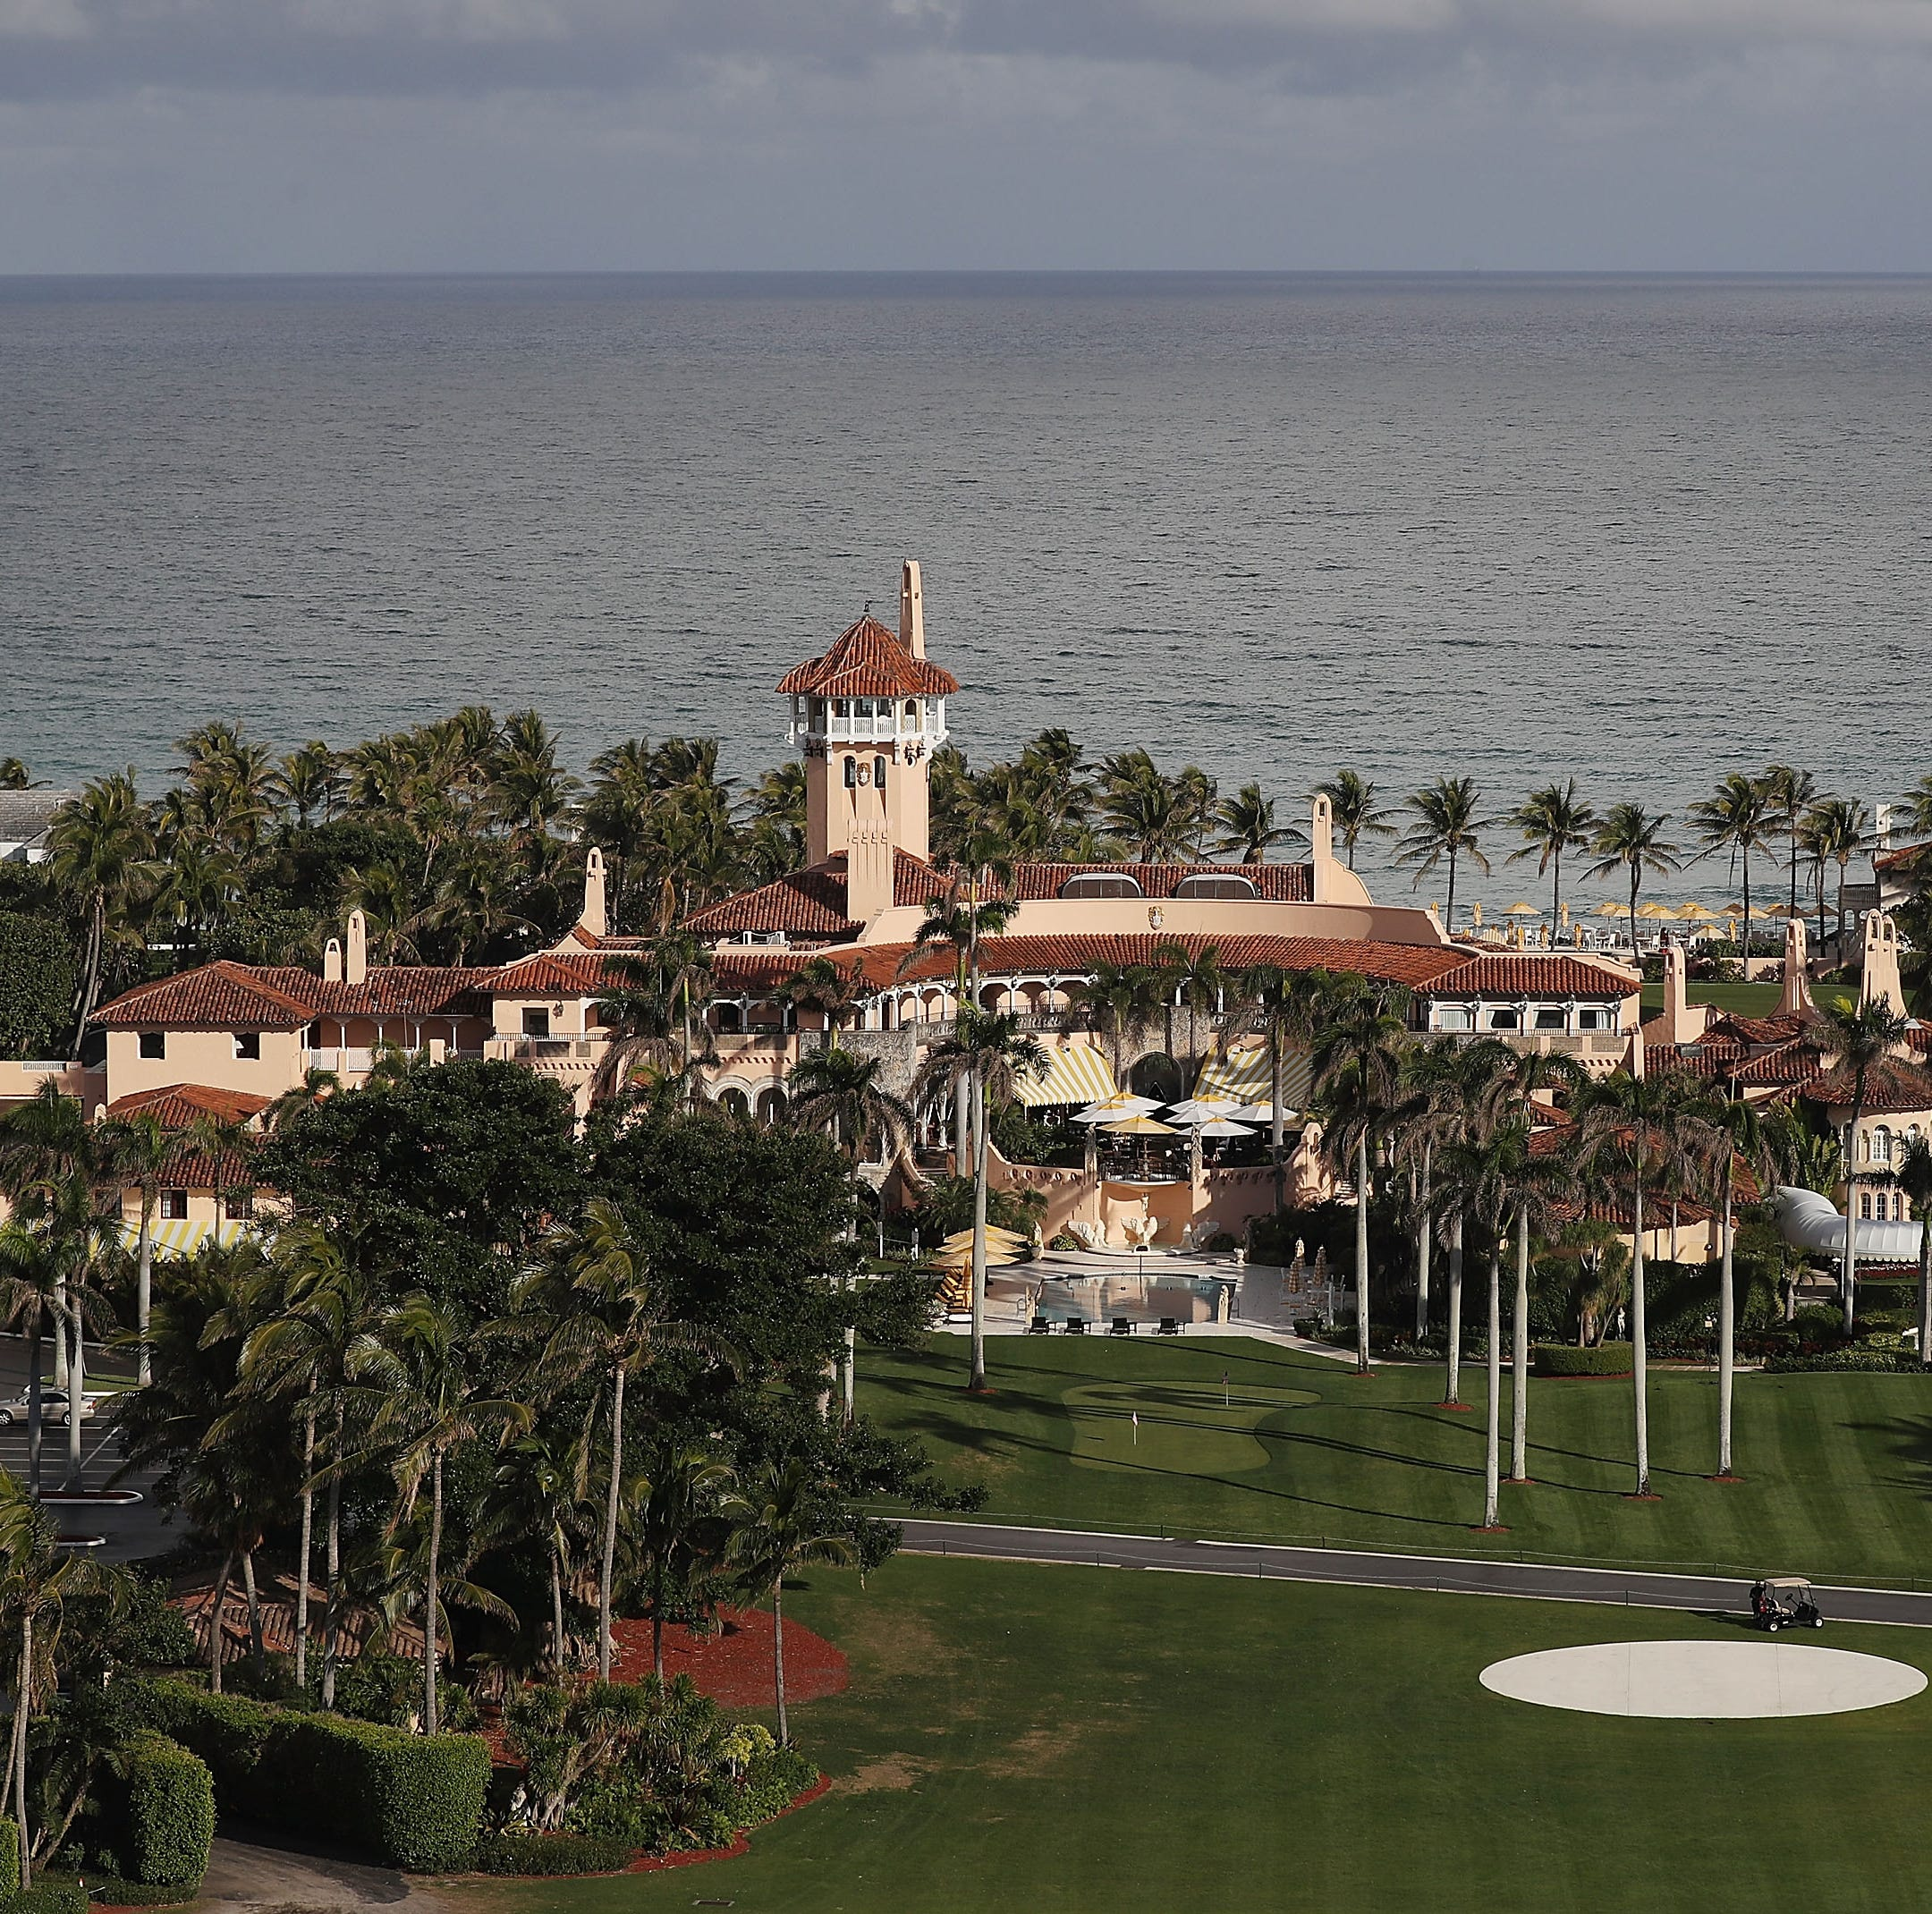 Chinese woman with 2 passports, malware arrested at Trump's Mar-a-Lago Club